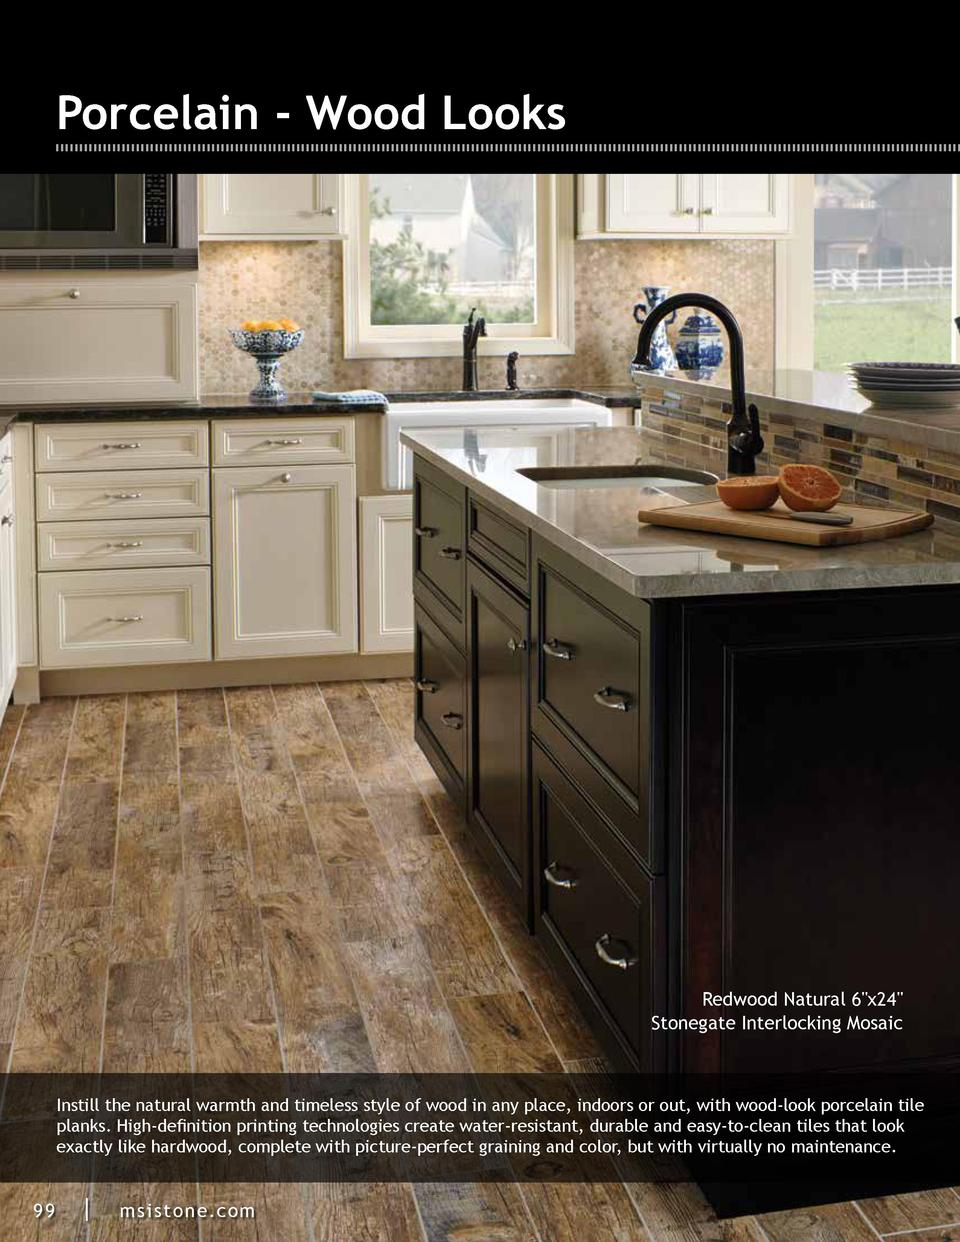 Porcelain - Wood Looks  Redwood Natural 6 x24  Stonegate Interlocking Mosaic  Instill the natural warmth and timeless styl...